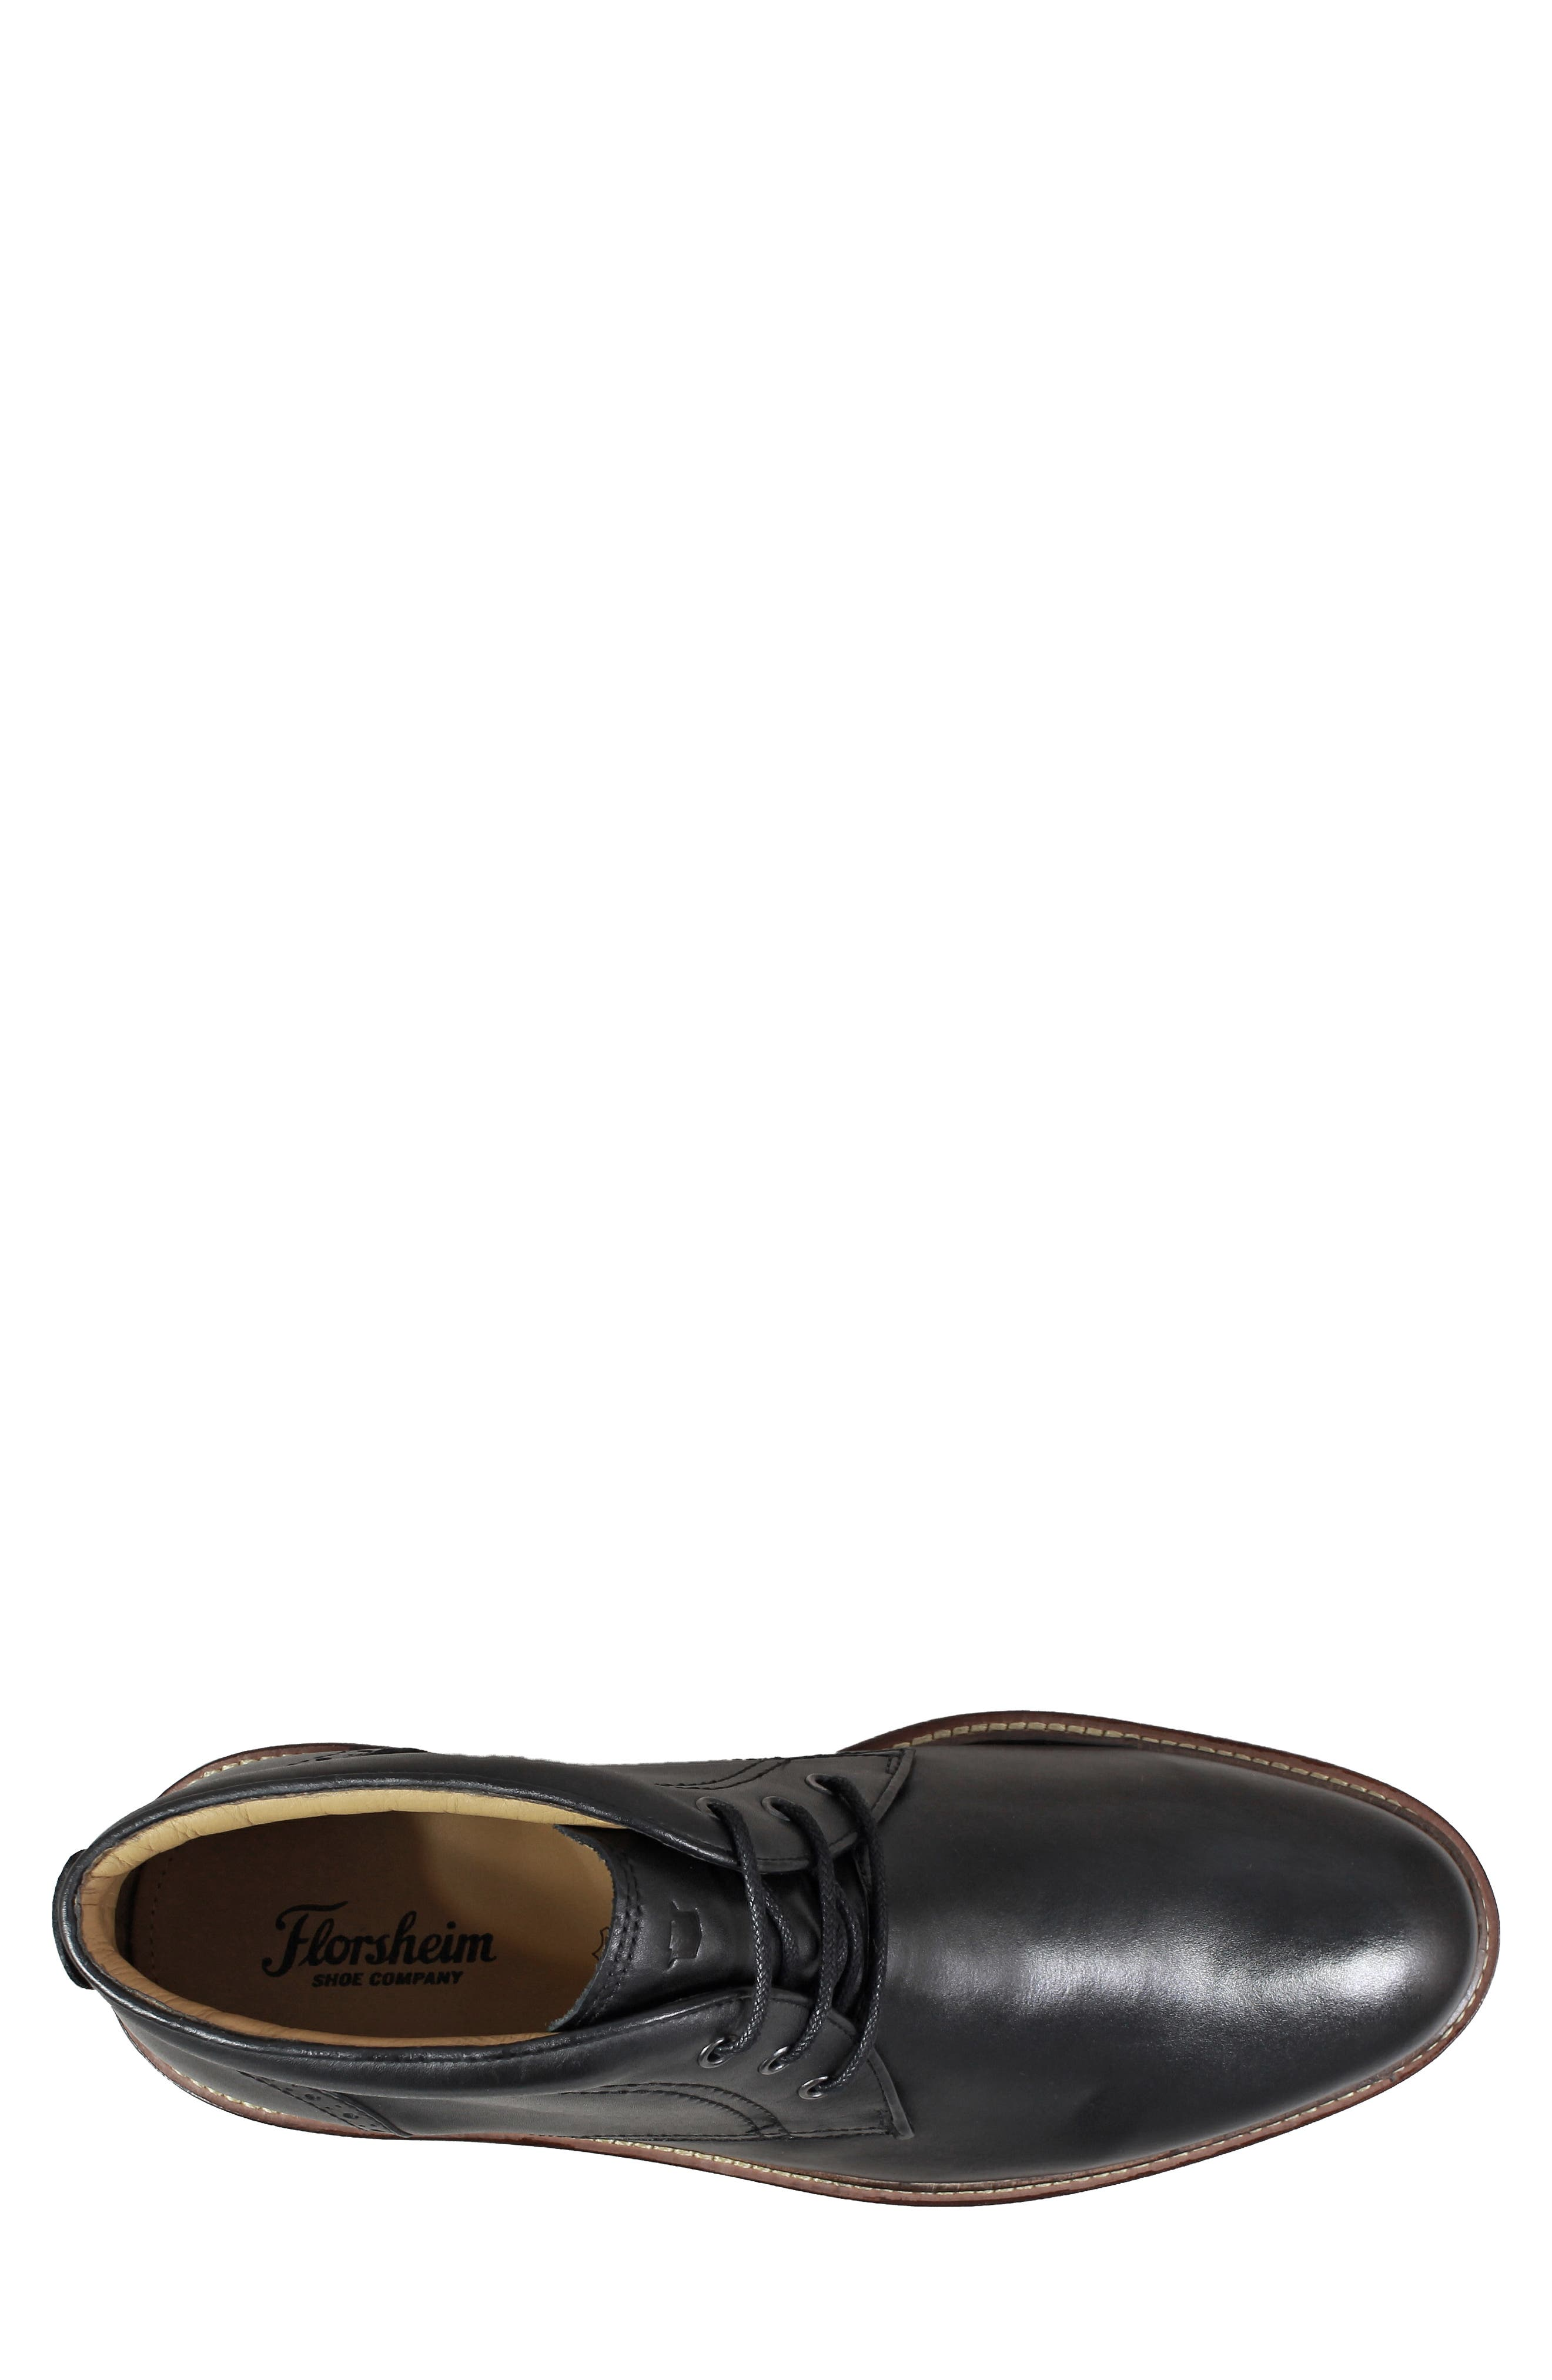 Estabrook Lugged Chukka Boot,                             Alternate thumbnail 5, color,                             BLACK LEATHER